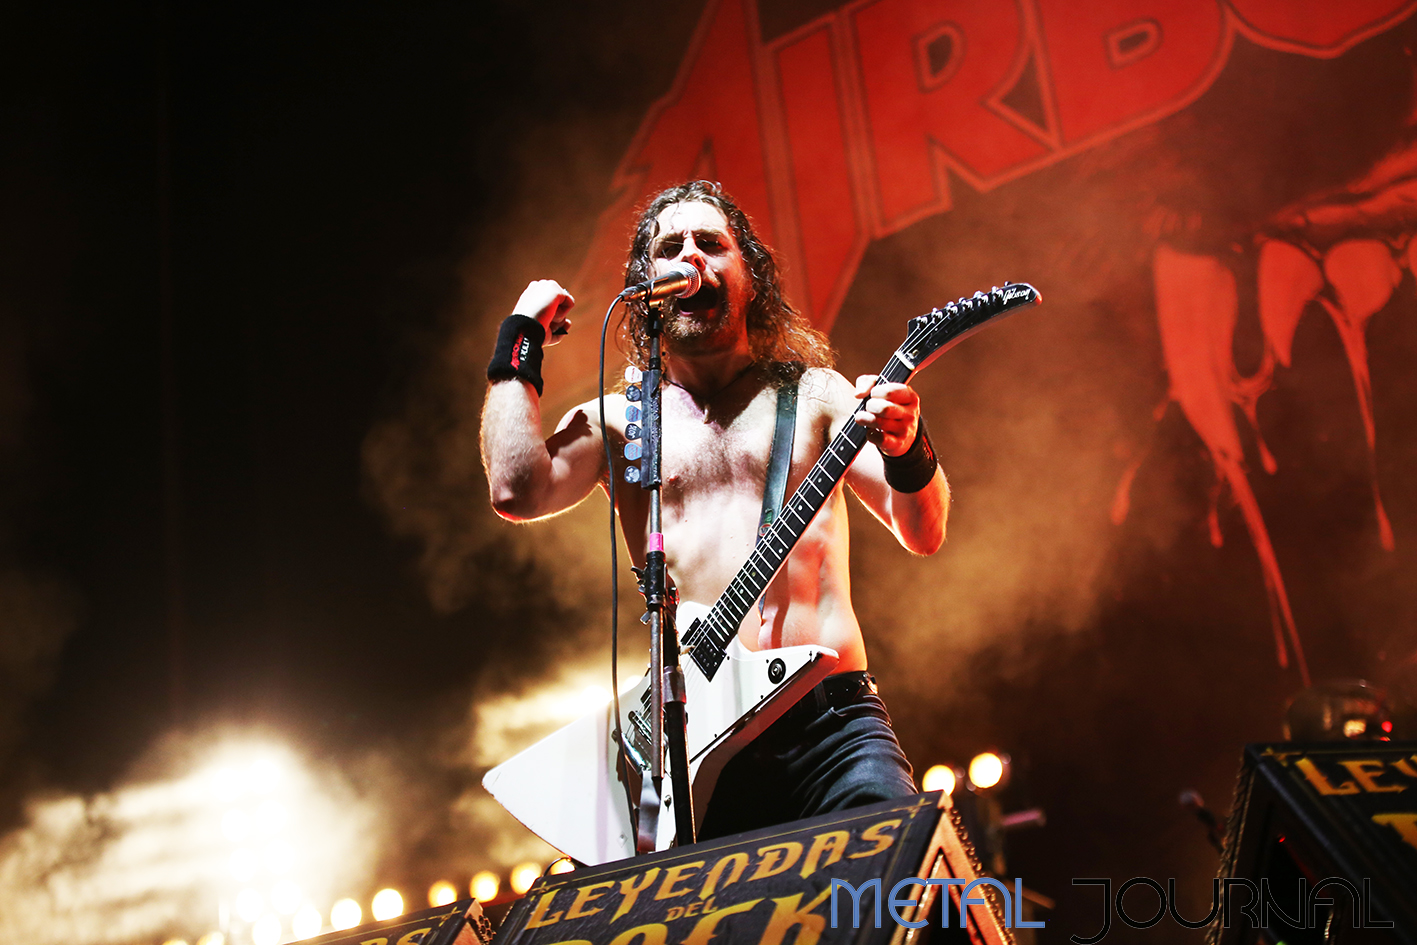 airbourne - leyendas del rock 2019 metal journal pic 11